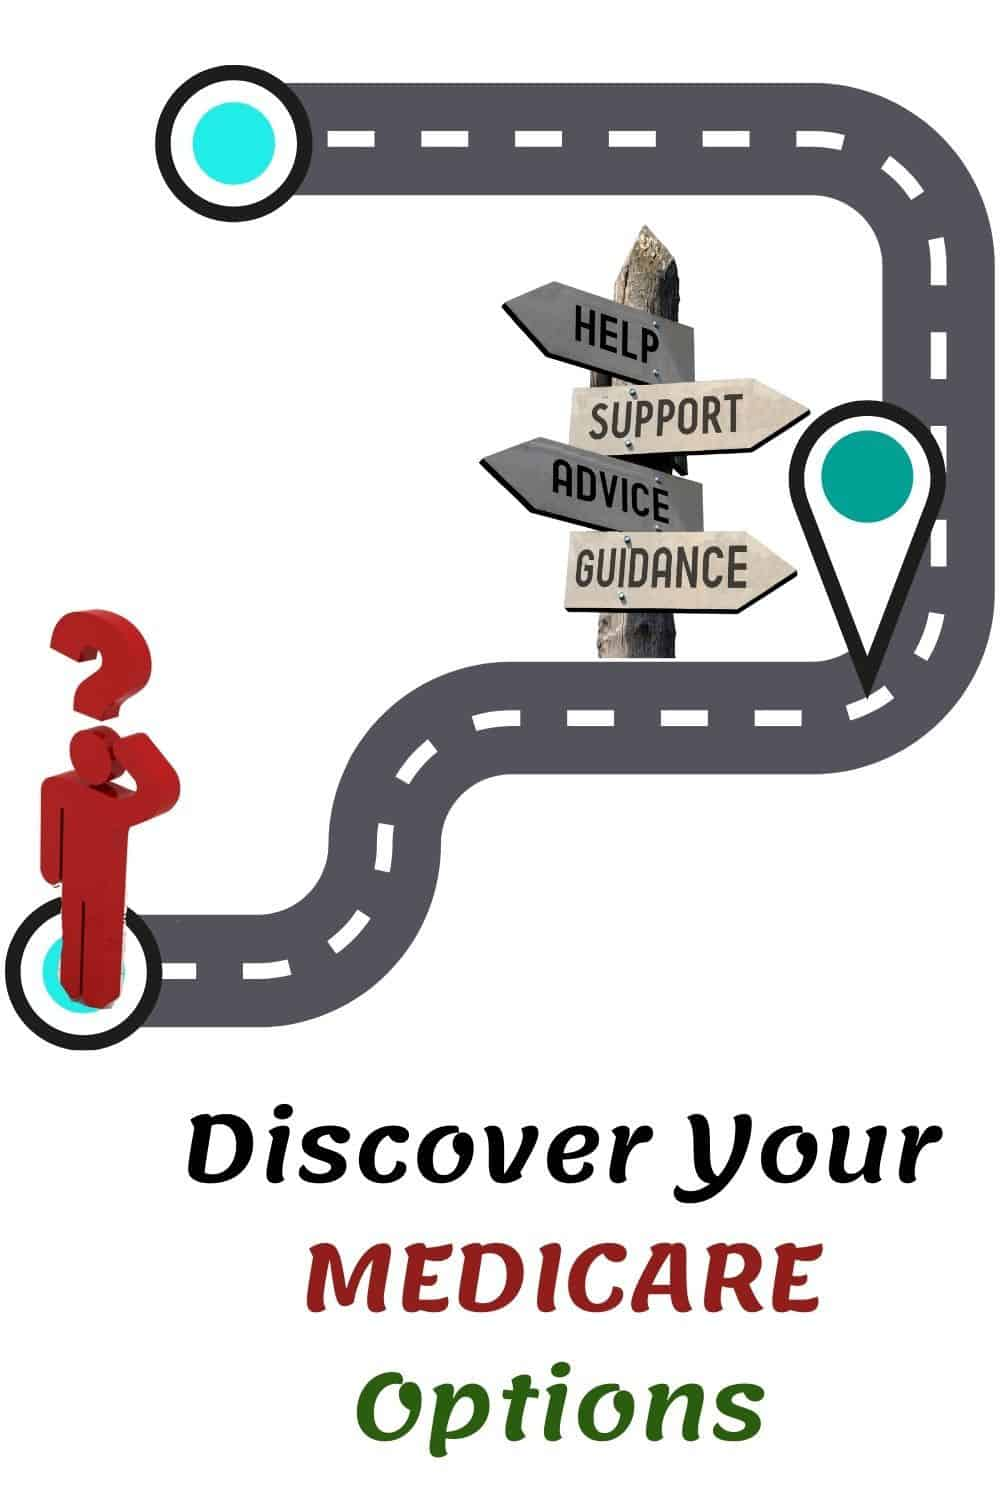 Discover Your MEDICARE Options a person looking for help